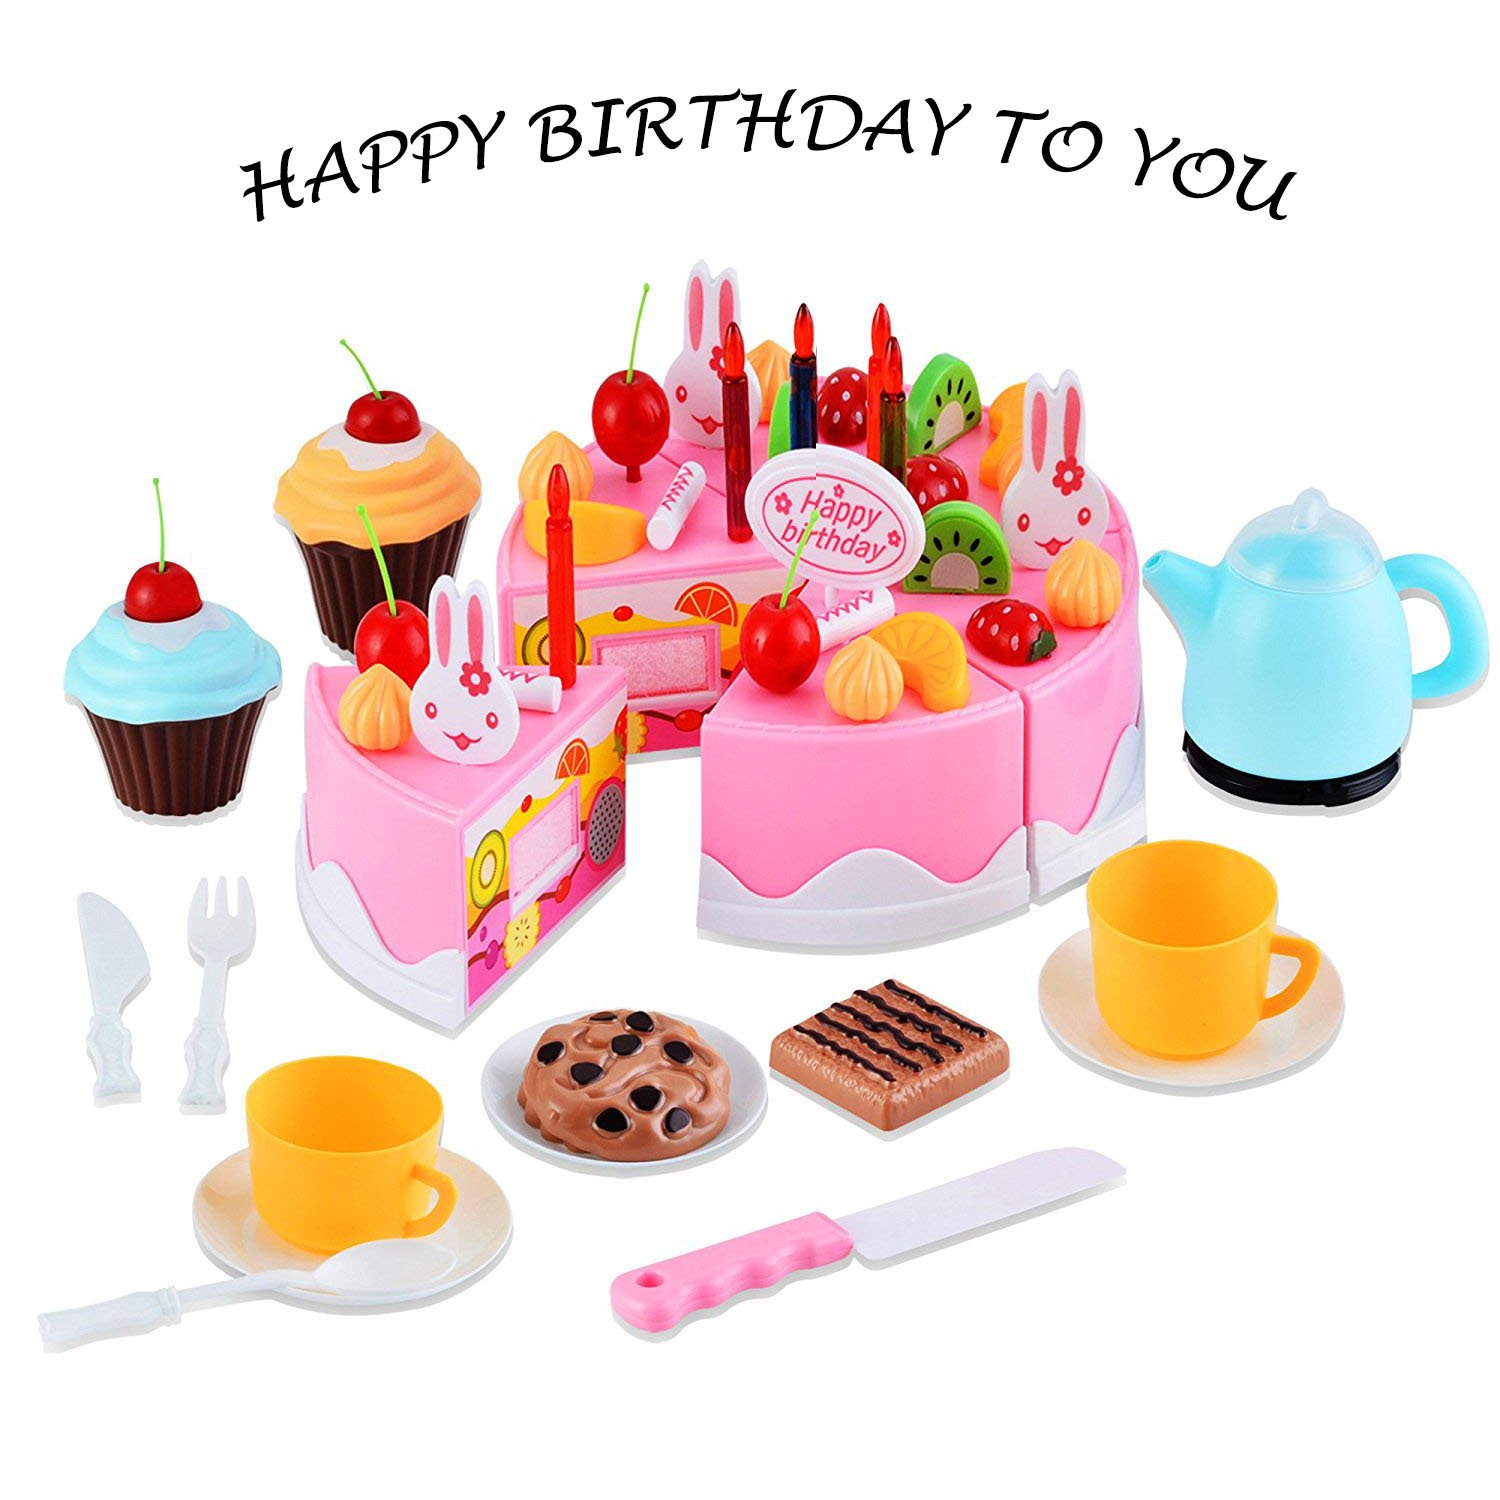 Kids Pretend Play Toys Birthday Cake Children's Day Gift Play Food Toy Set DIY COSPLAY Cutting Pretend Play Birthday Party Cake Desserts Toy Candles For Children Play Tea set